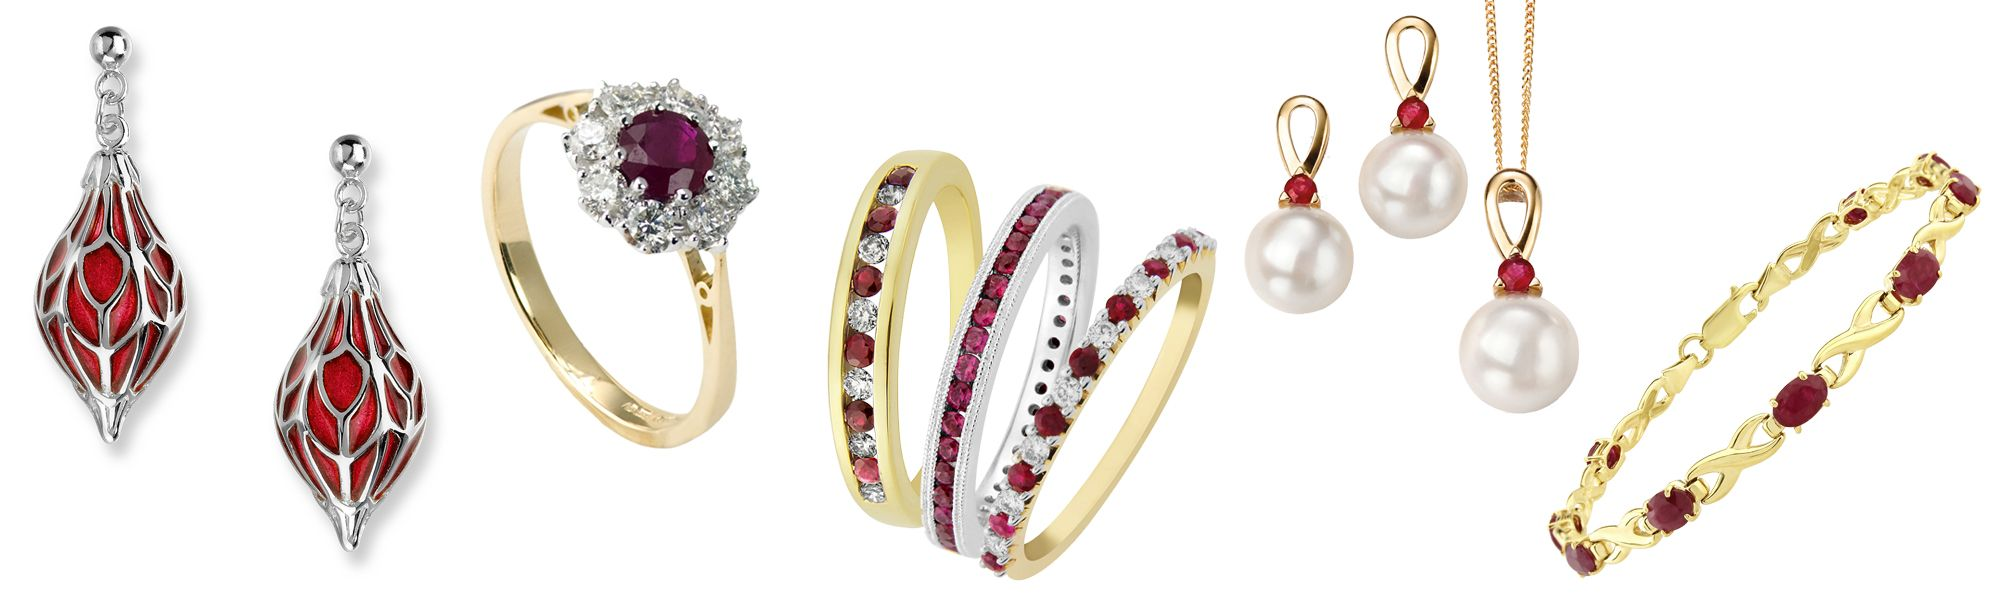 Sally's blog Kaleidoscope of Red Gemstone jewellery from AA Thornton Kettering